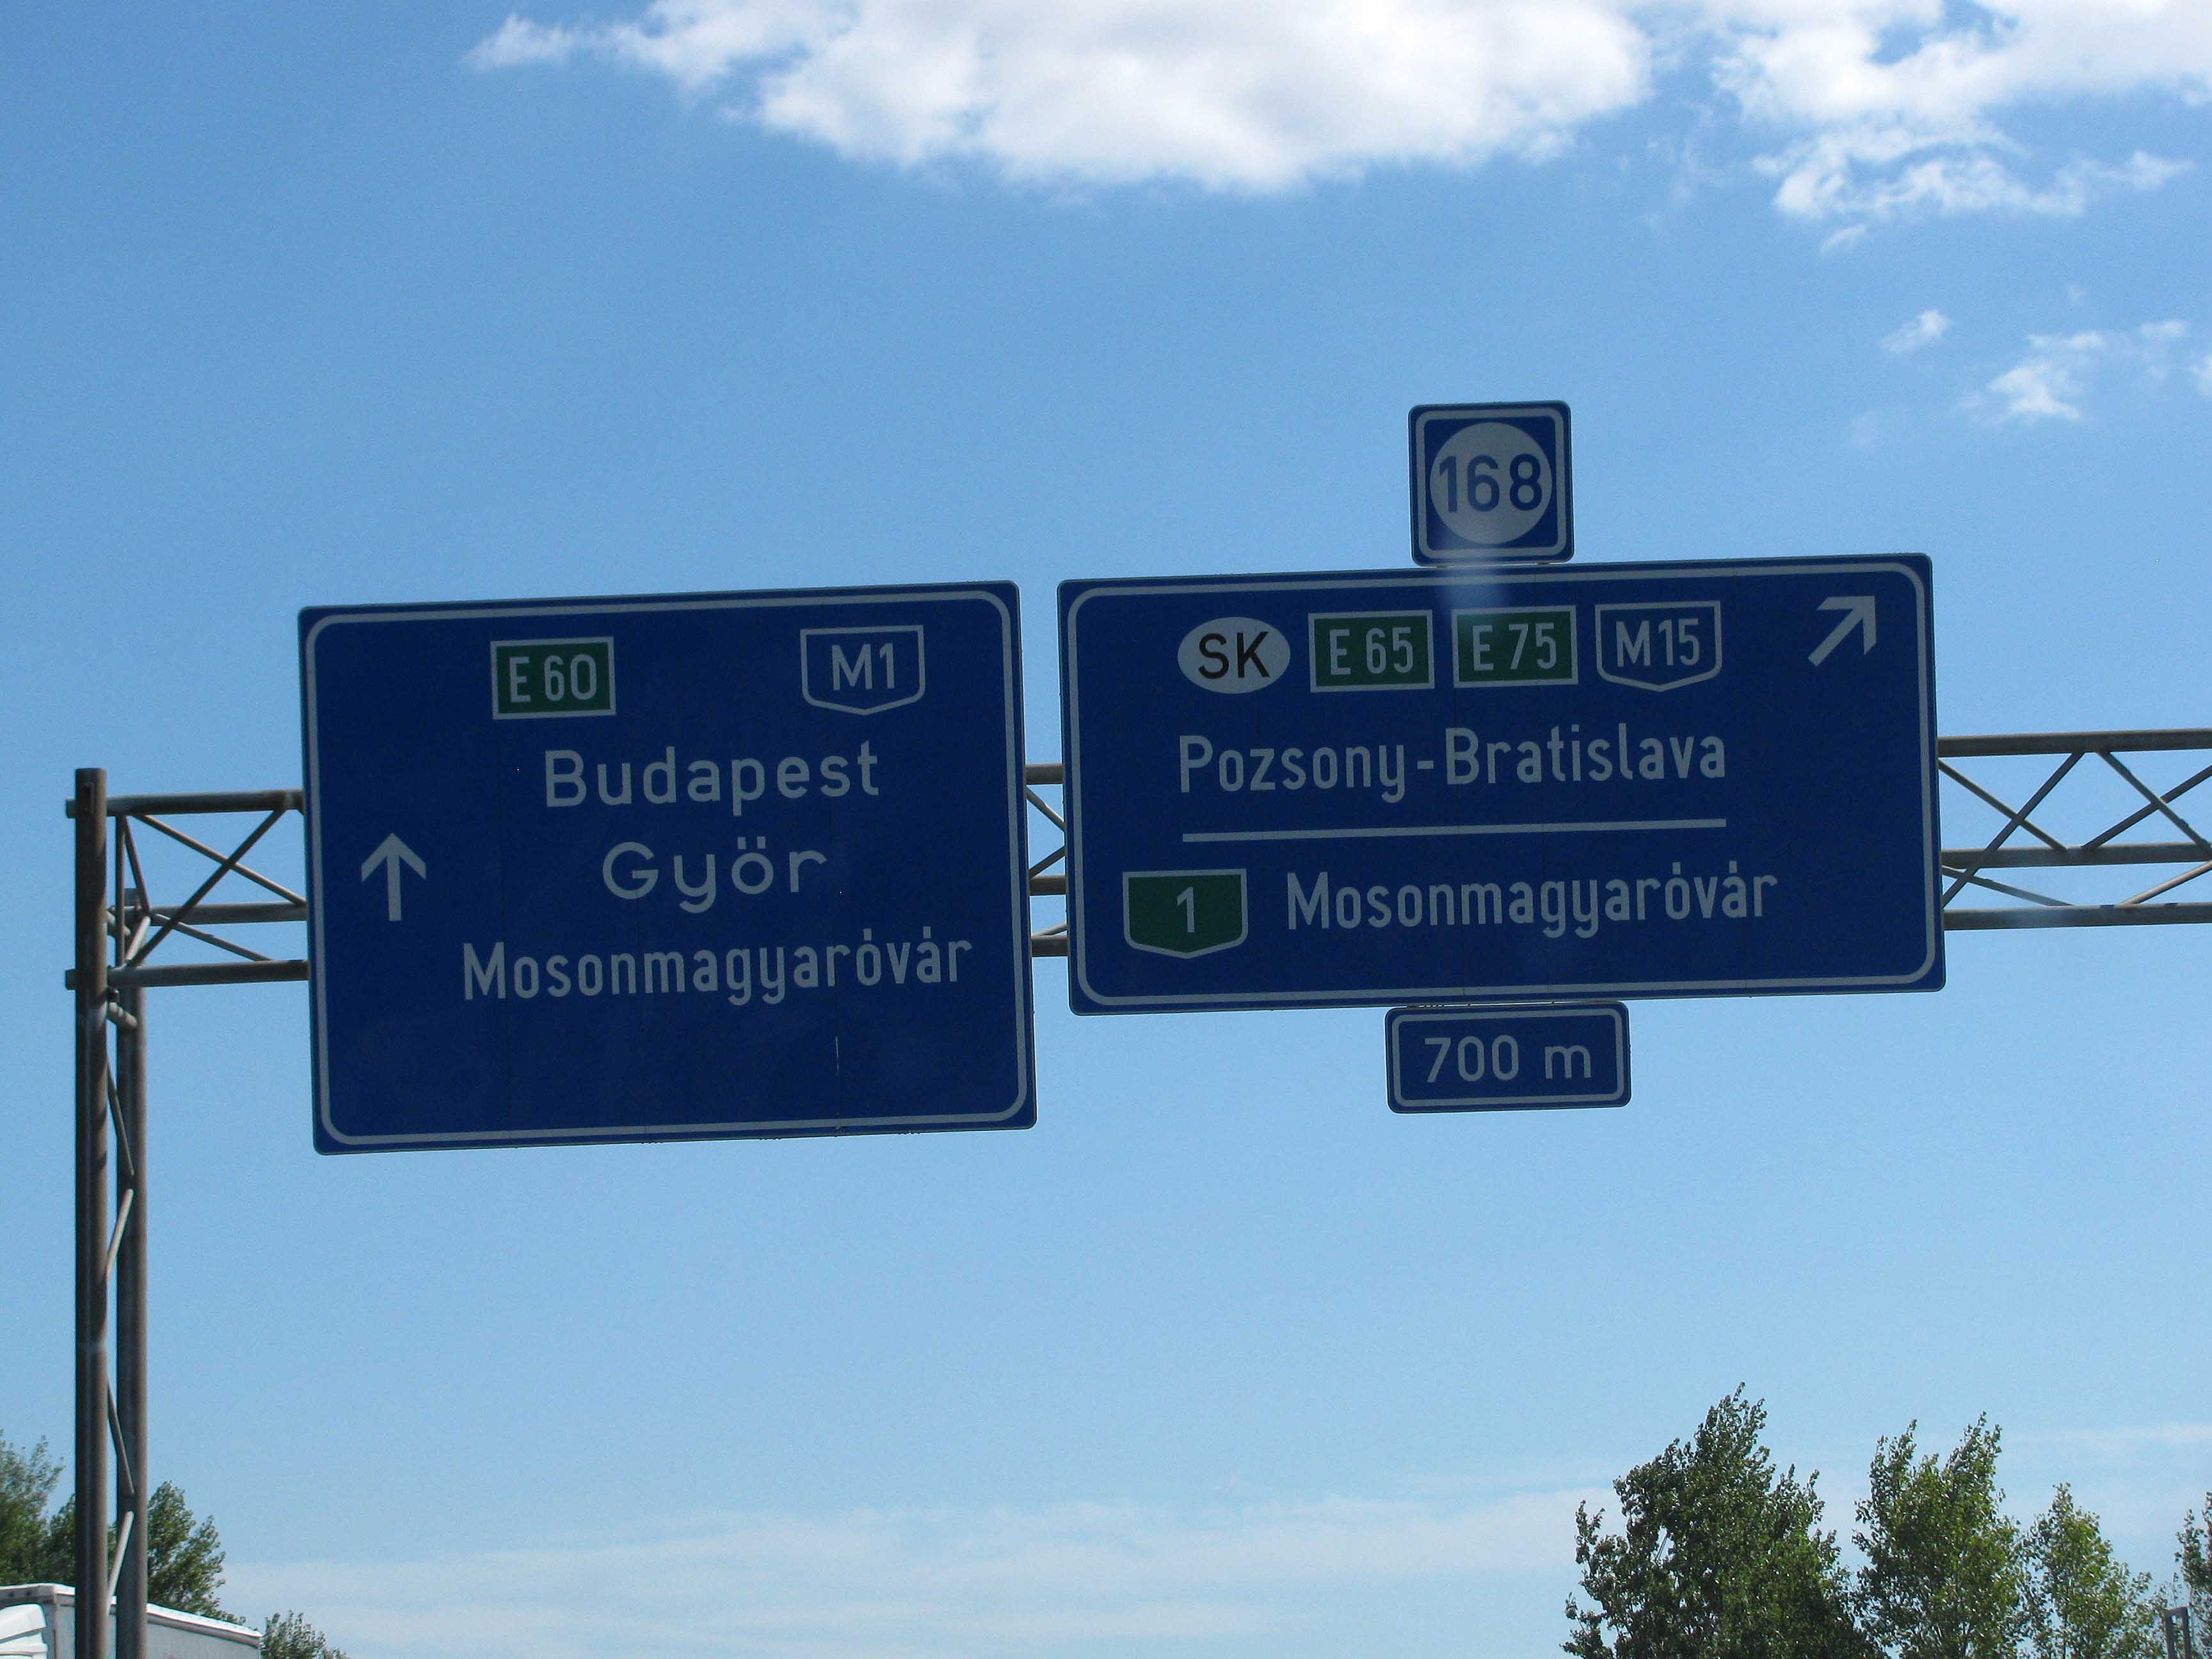 Roads Hungary E Toll Cz Confusion A Useful New Road Finland Hungarys Electronic System Looks Set To Miss Its July 2013 Start Date Contract Build And Operate The Reportedly Biggest Public